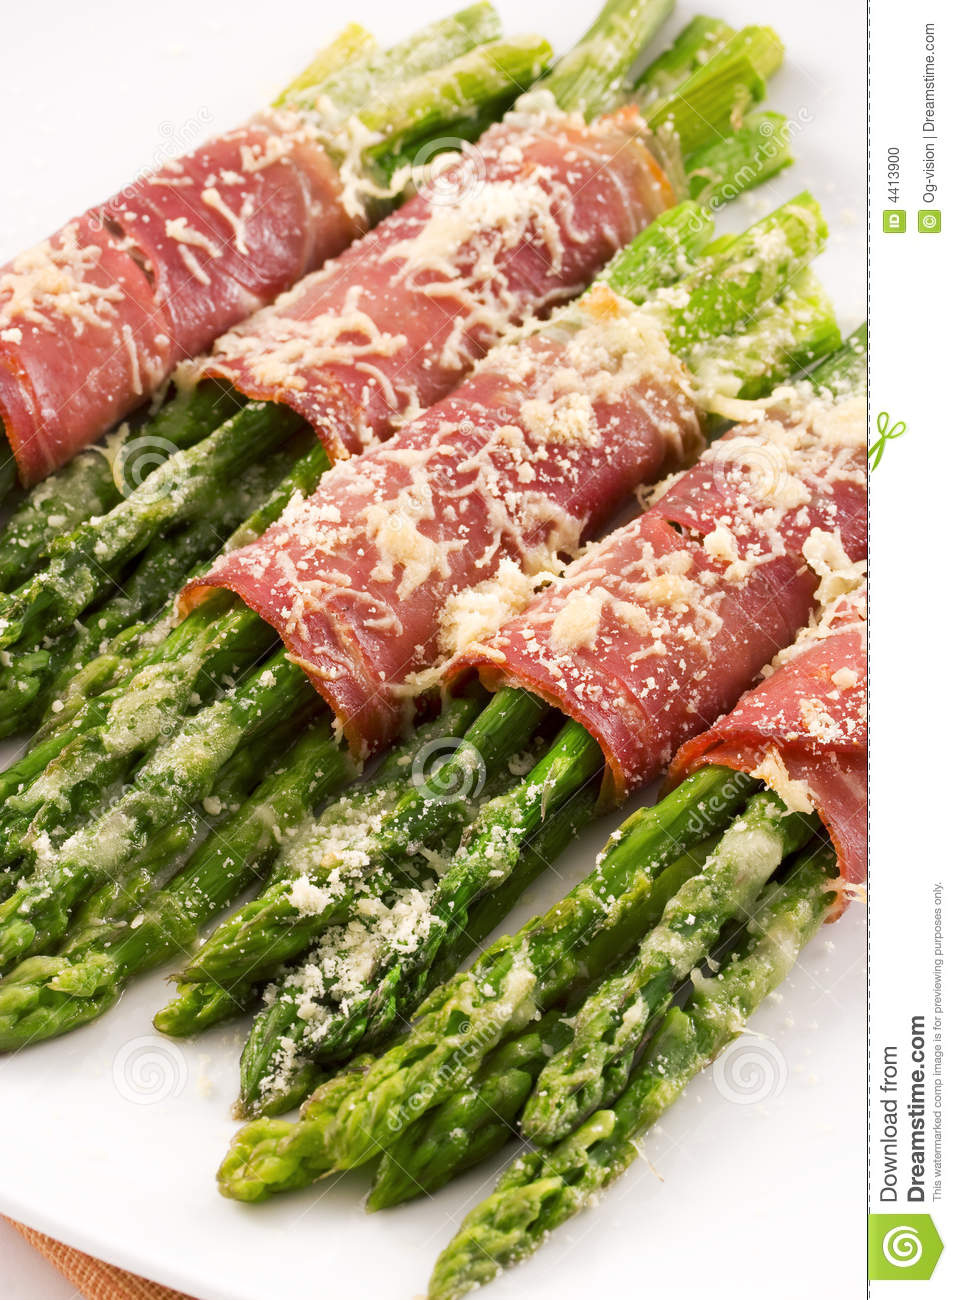 Prosciutto wrapped asparagus with parmesan cheese.